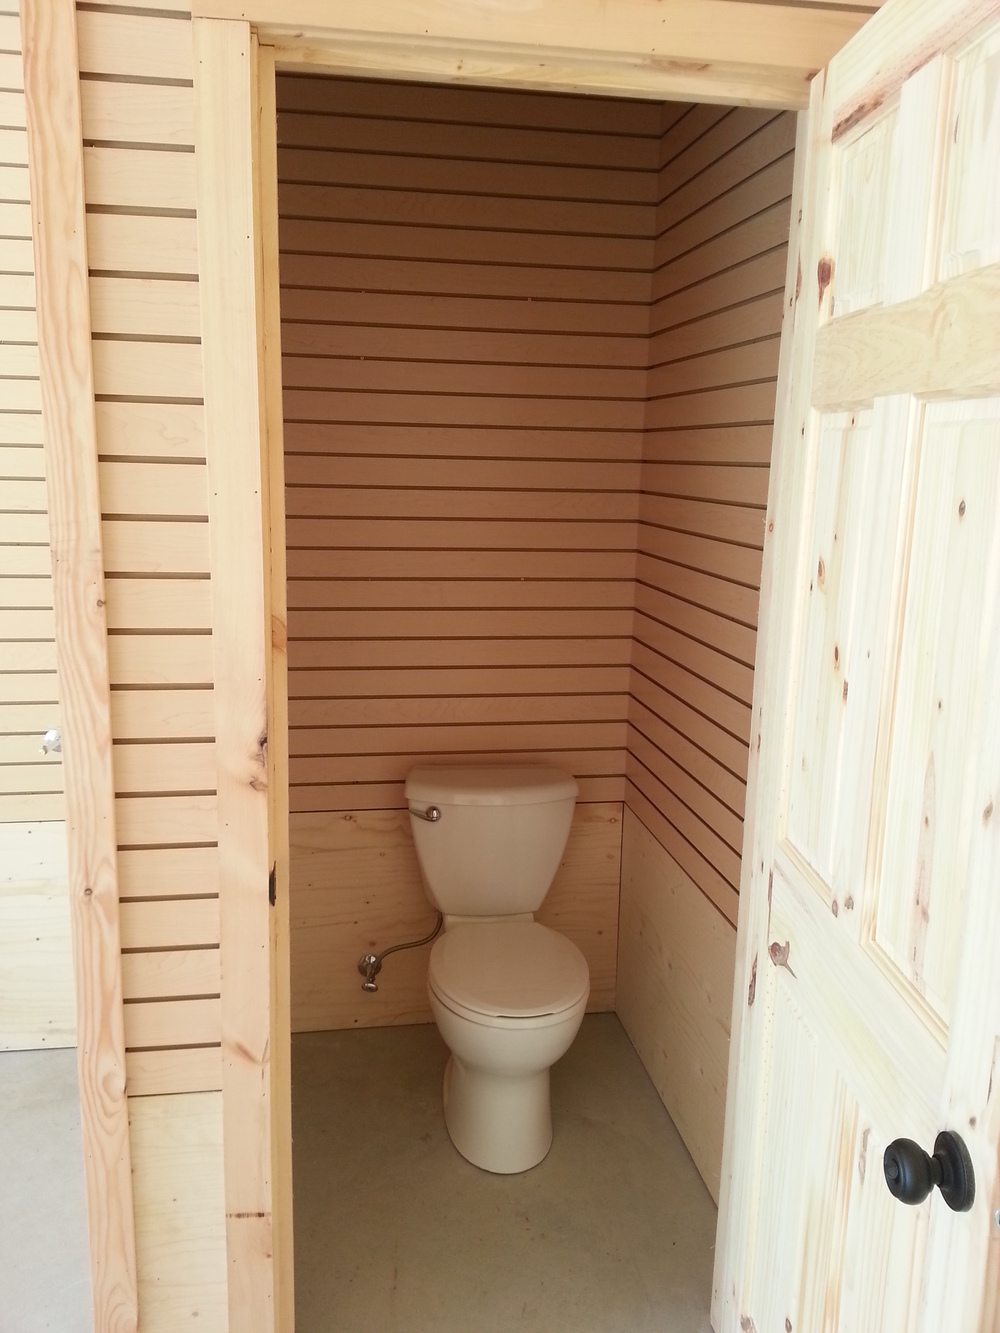 Toilet installed in water closet